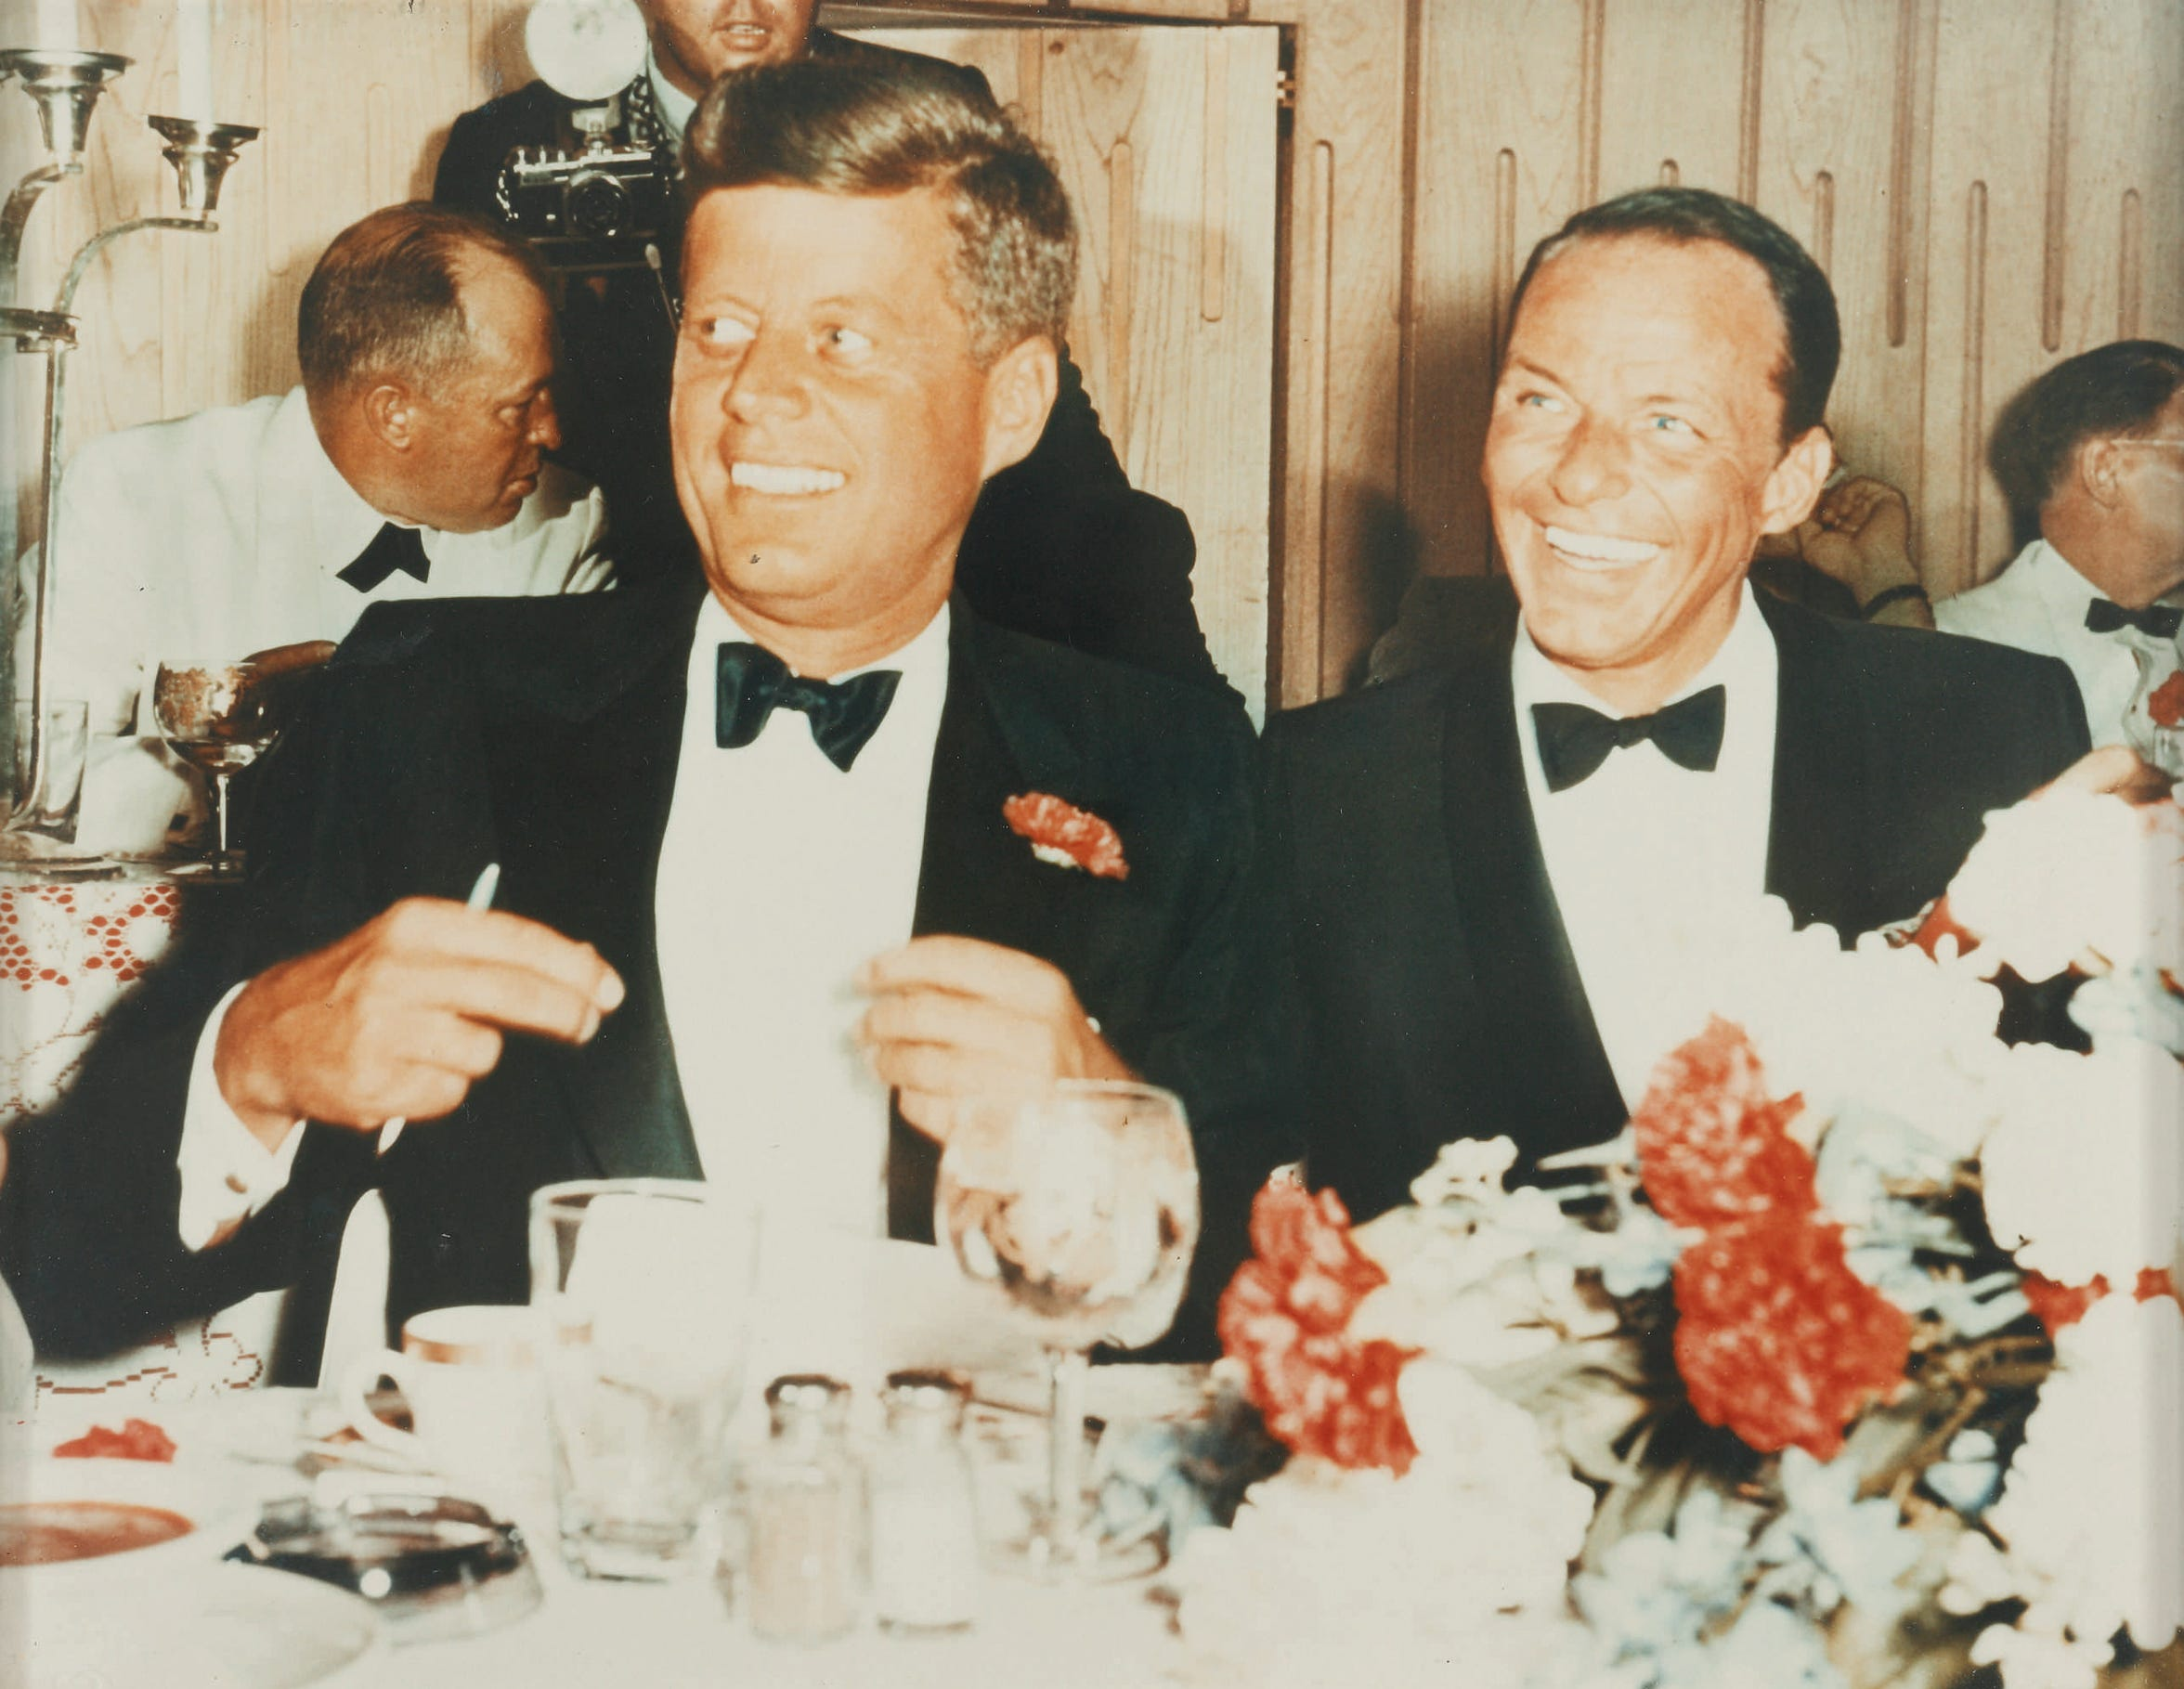 President John F. Kennedy and Frank Sinatra, pictured at the 1961 Inaugural Gala